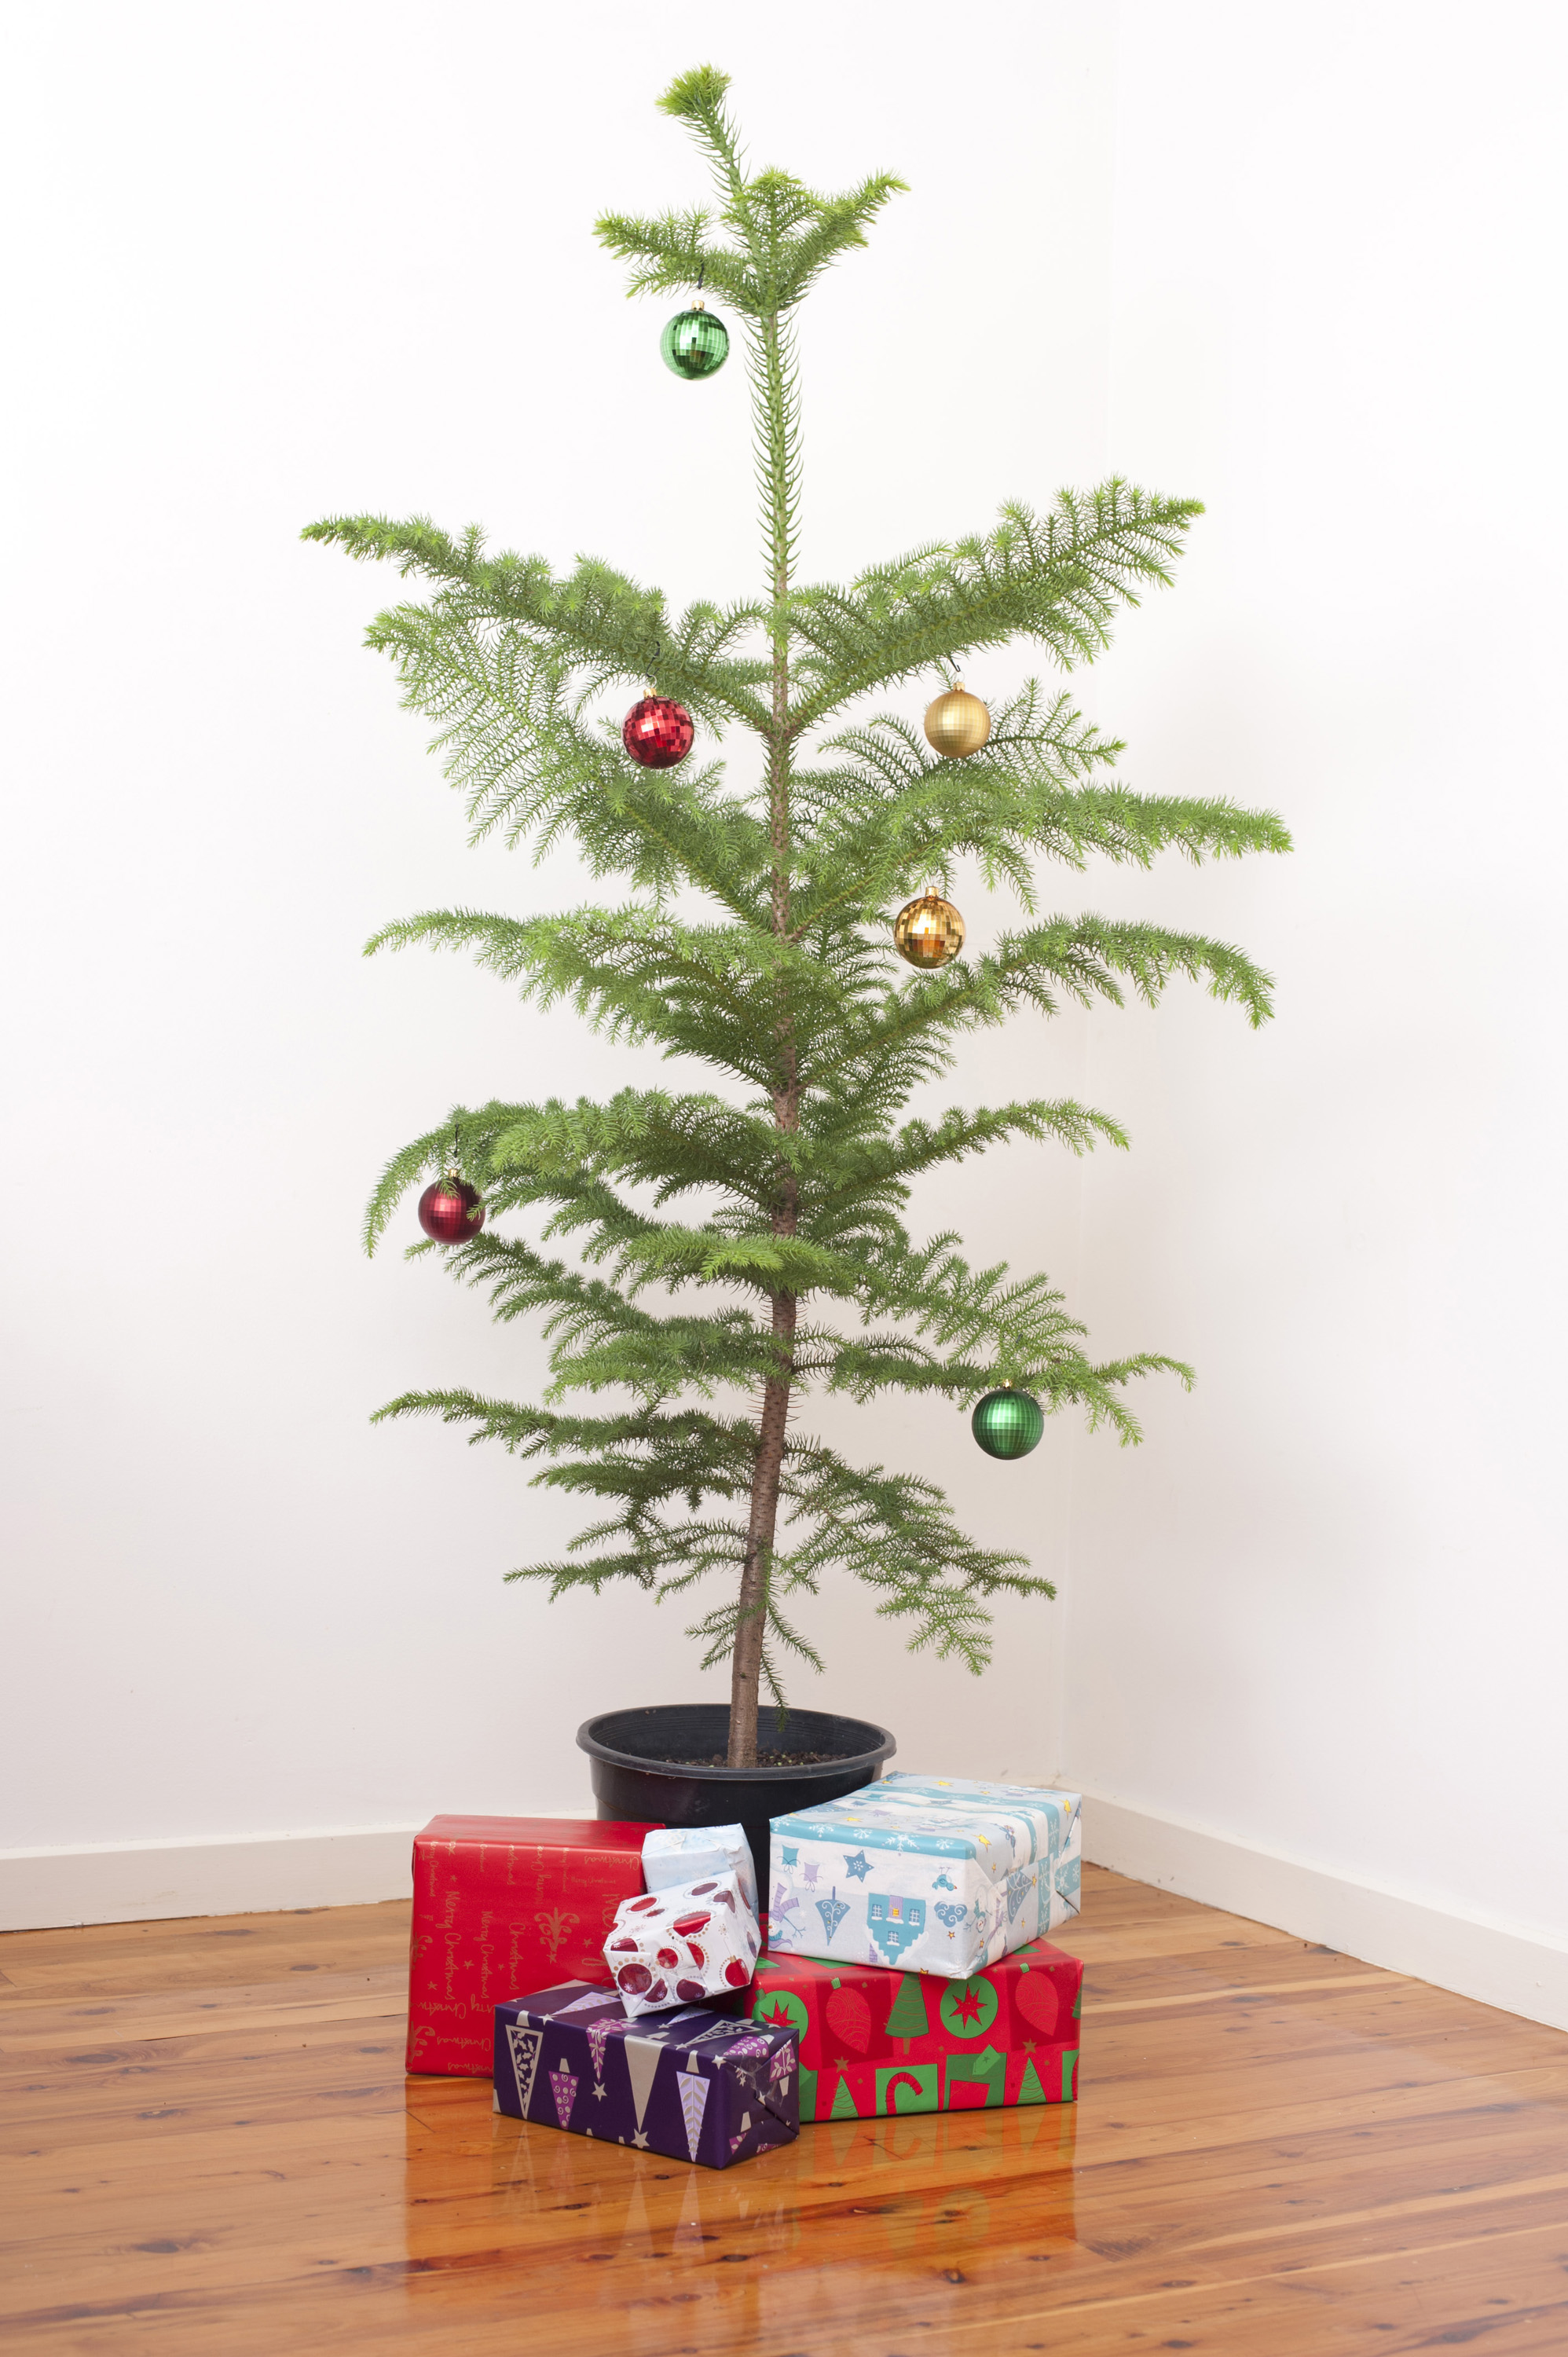 Photo Of Simple Christmas Free Christmas Images